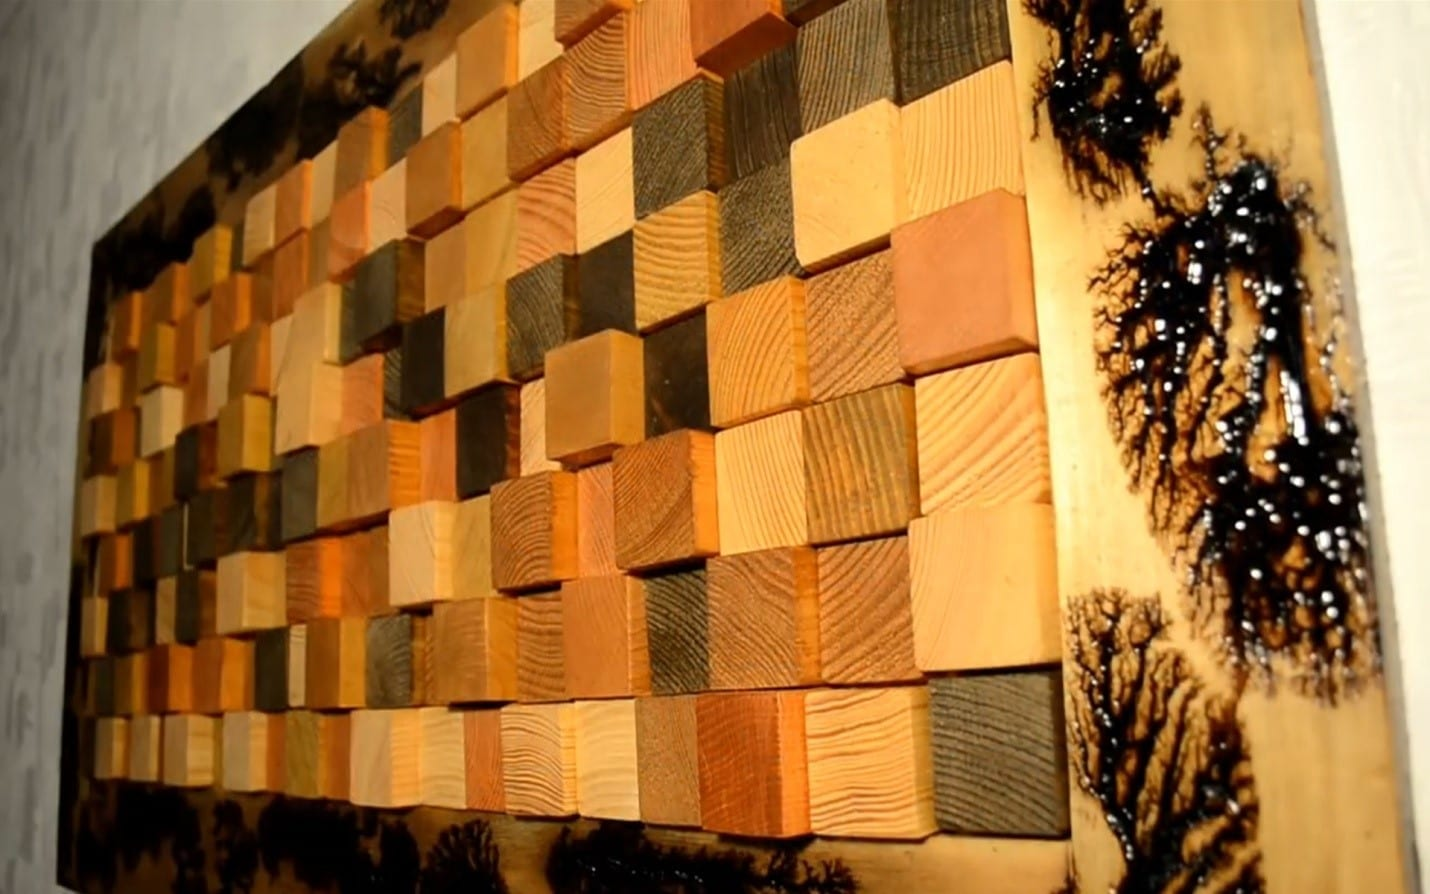 How To Make A 3D Wall Panel From Reclaimed Wood DIY